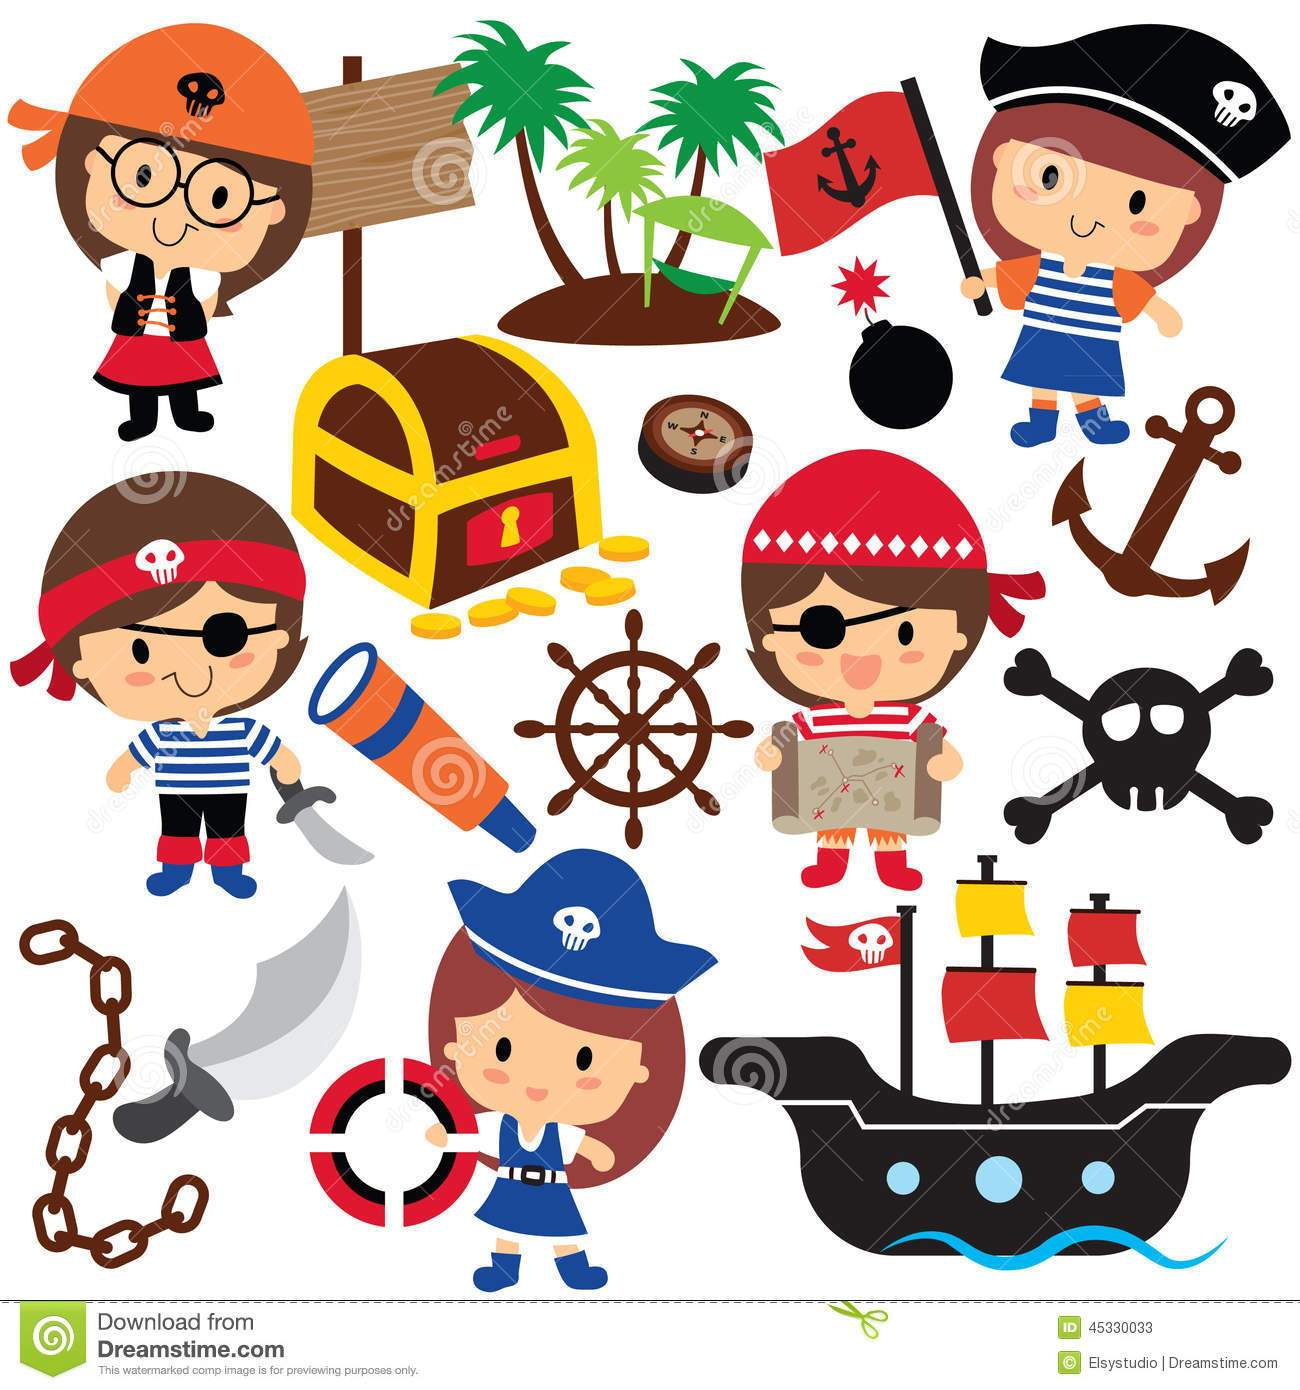 Pirate clipart for kids free graphic Pirate clipart for kids free 2 » Clipart Portal graphic